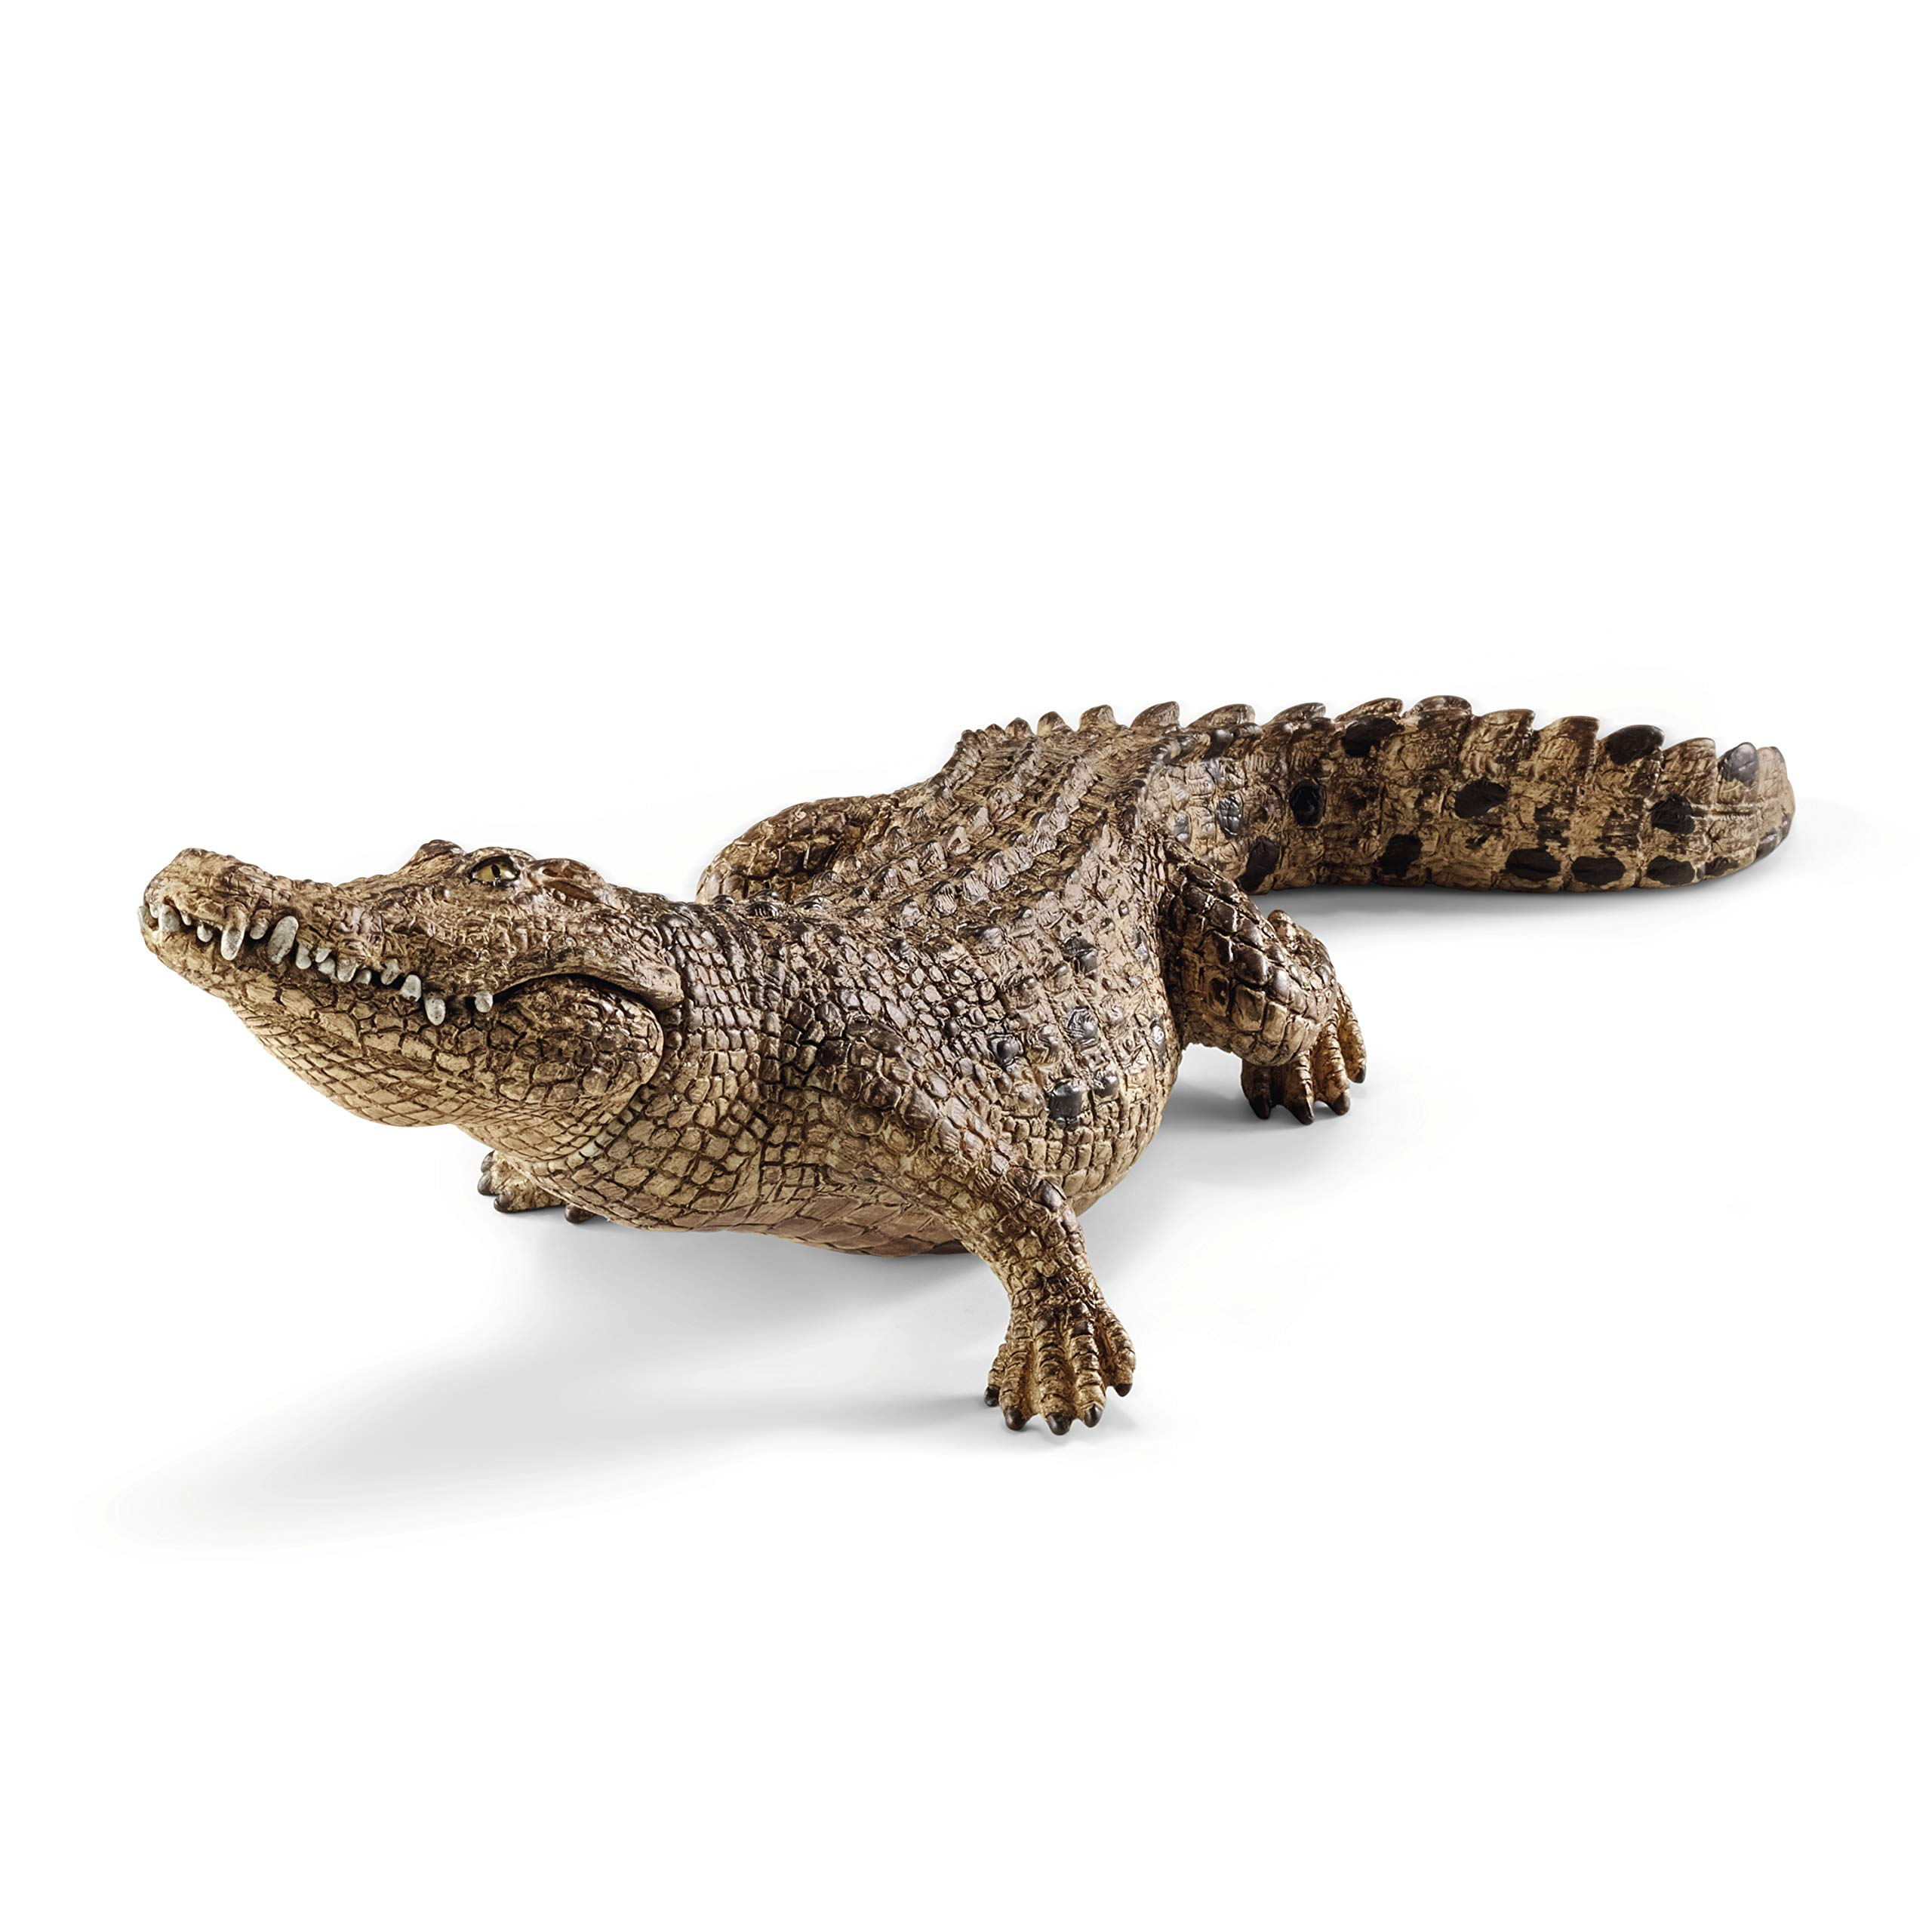 Schleich Wild Life, Animal Figurine, Animal Toys for Boys and Girls 3-8 years old, Crocodile